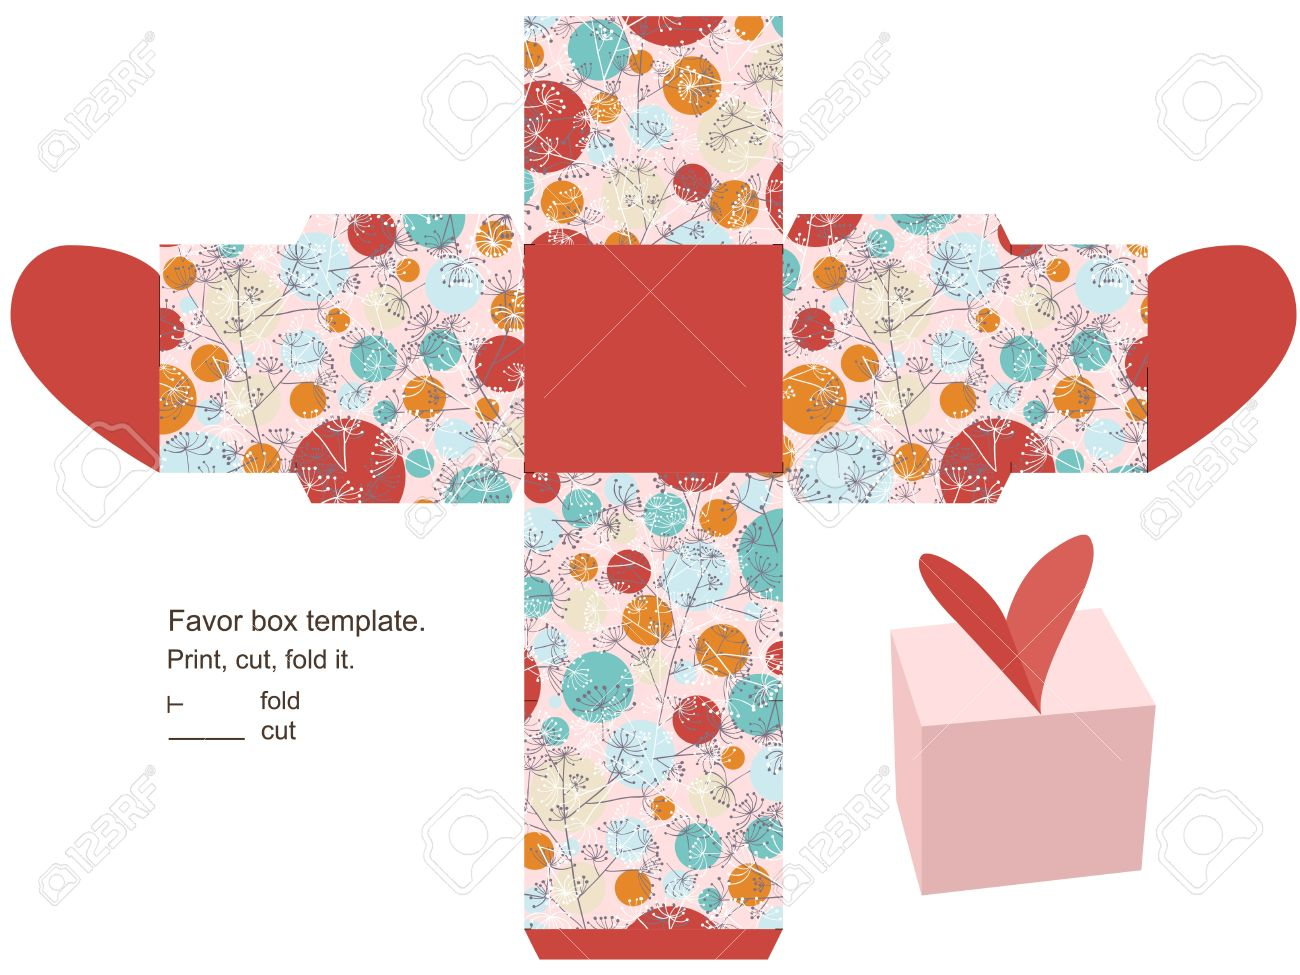 Favor box template. Floral pattern with herbs and circles. Heart  on the top. Stock Vector - 15031678